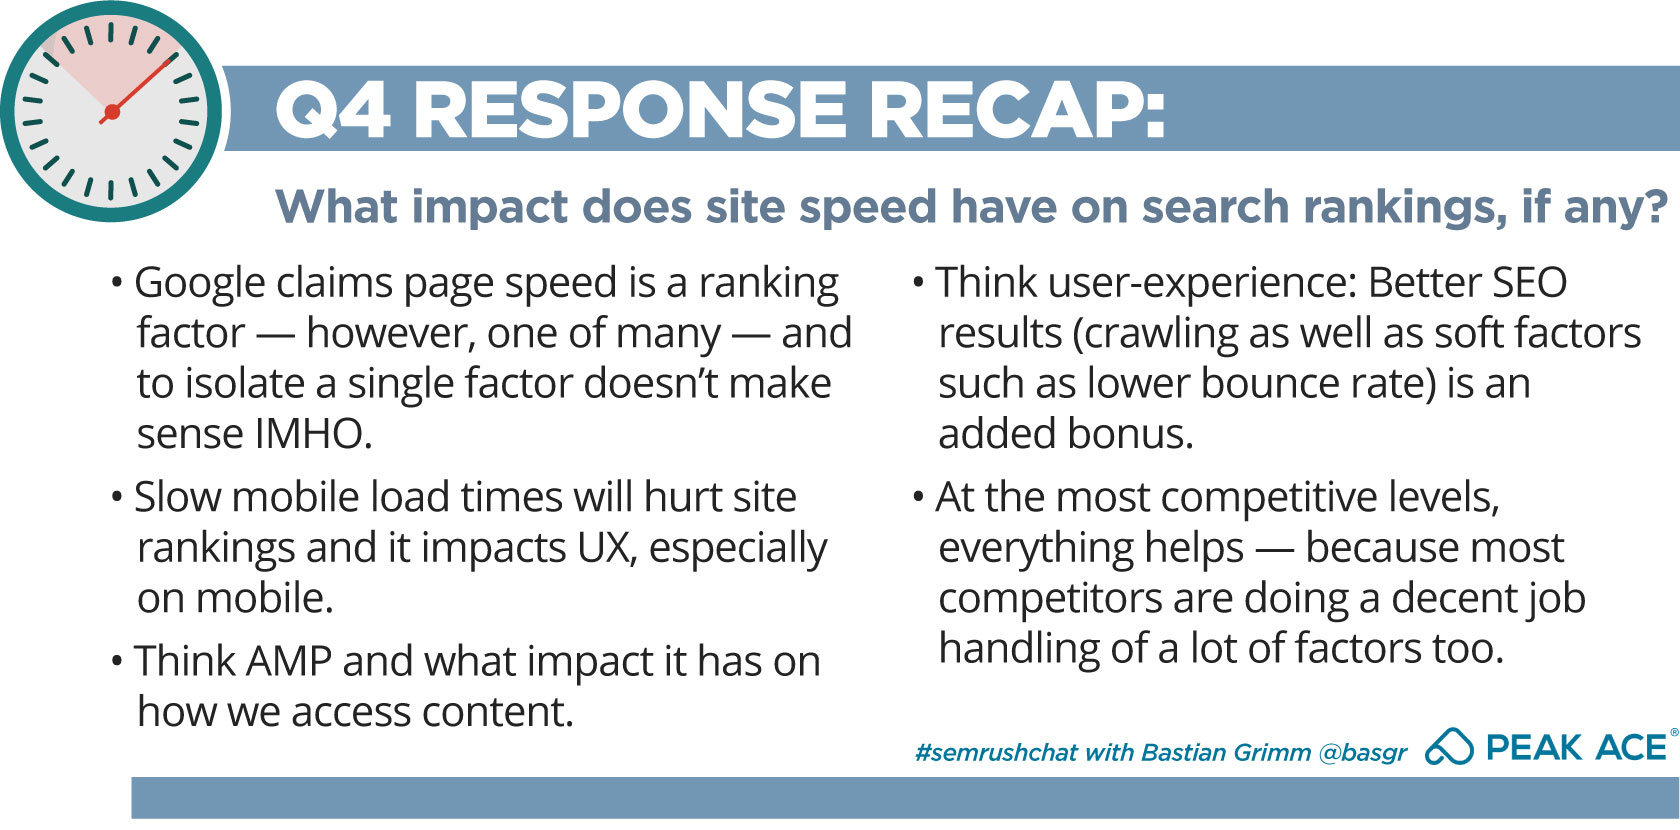 SEMrush Chat Recap Q4